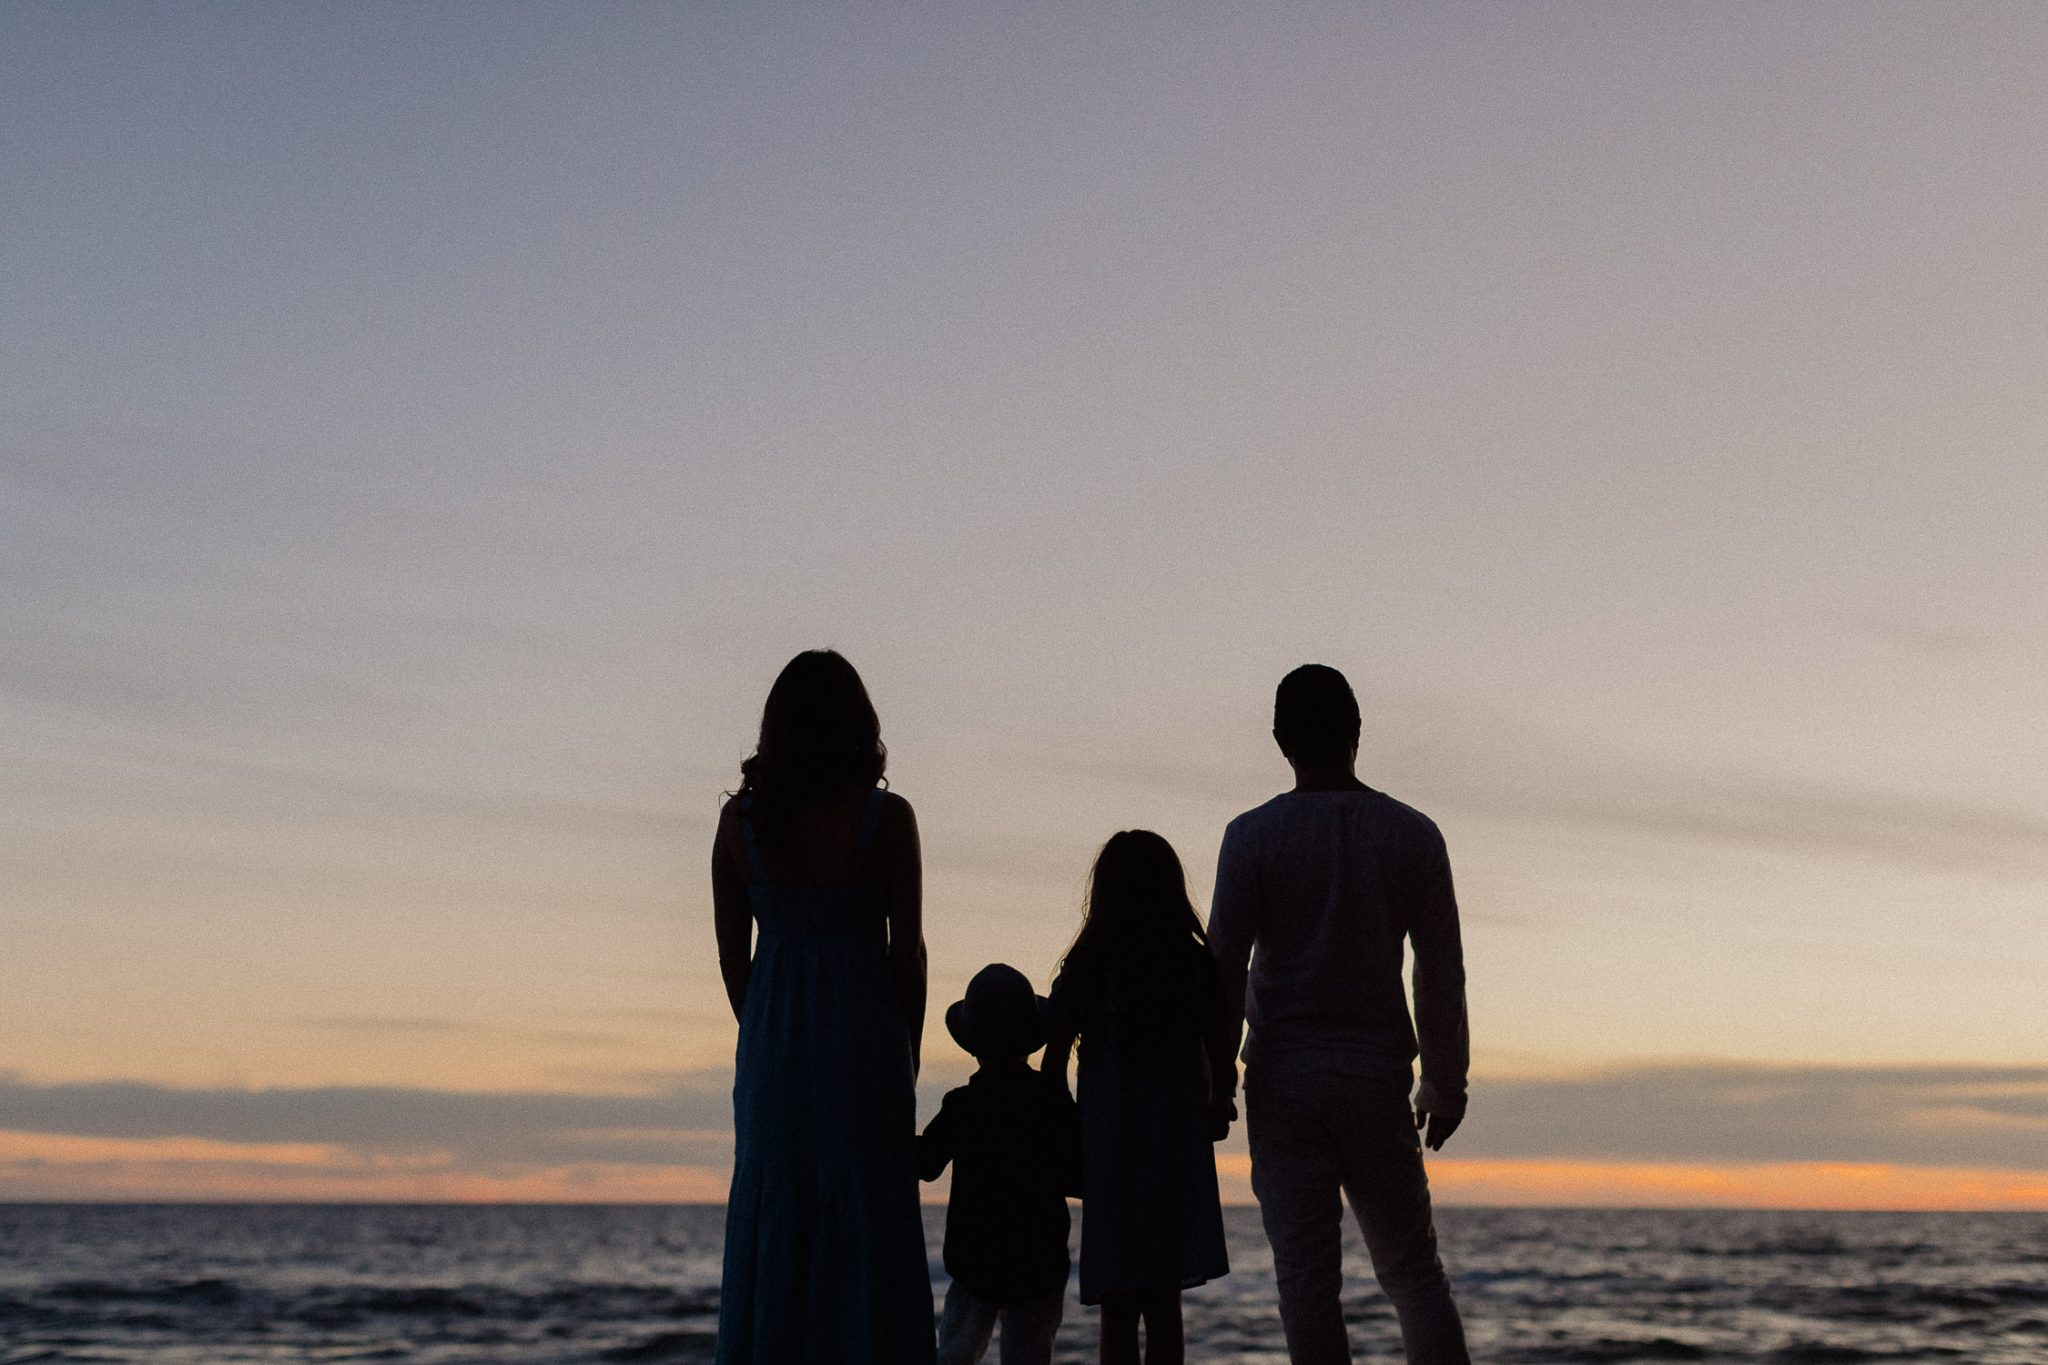 Silhouette family staring out at the horizon on the beach after sunset